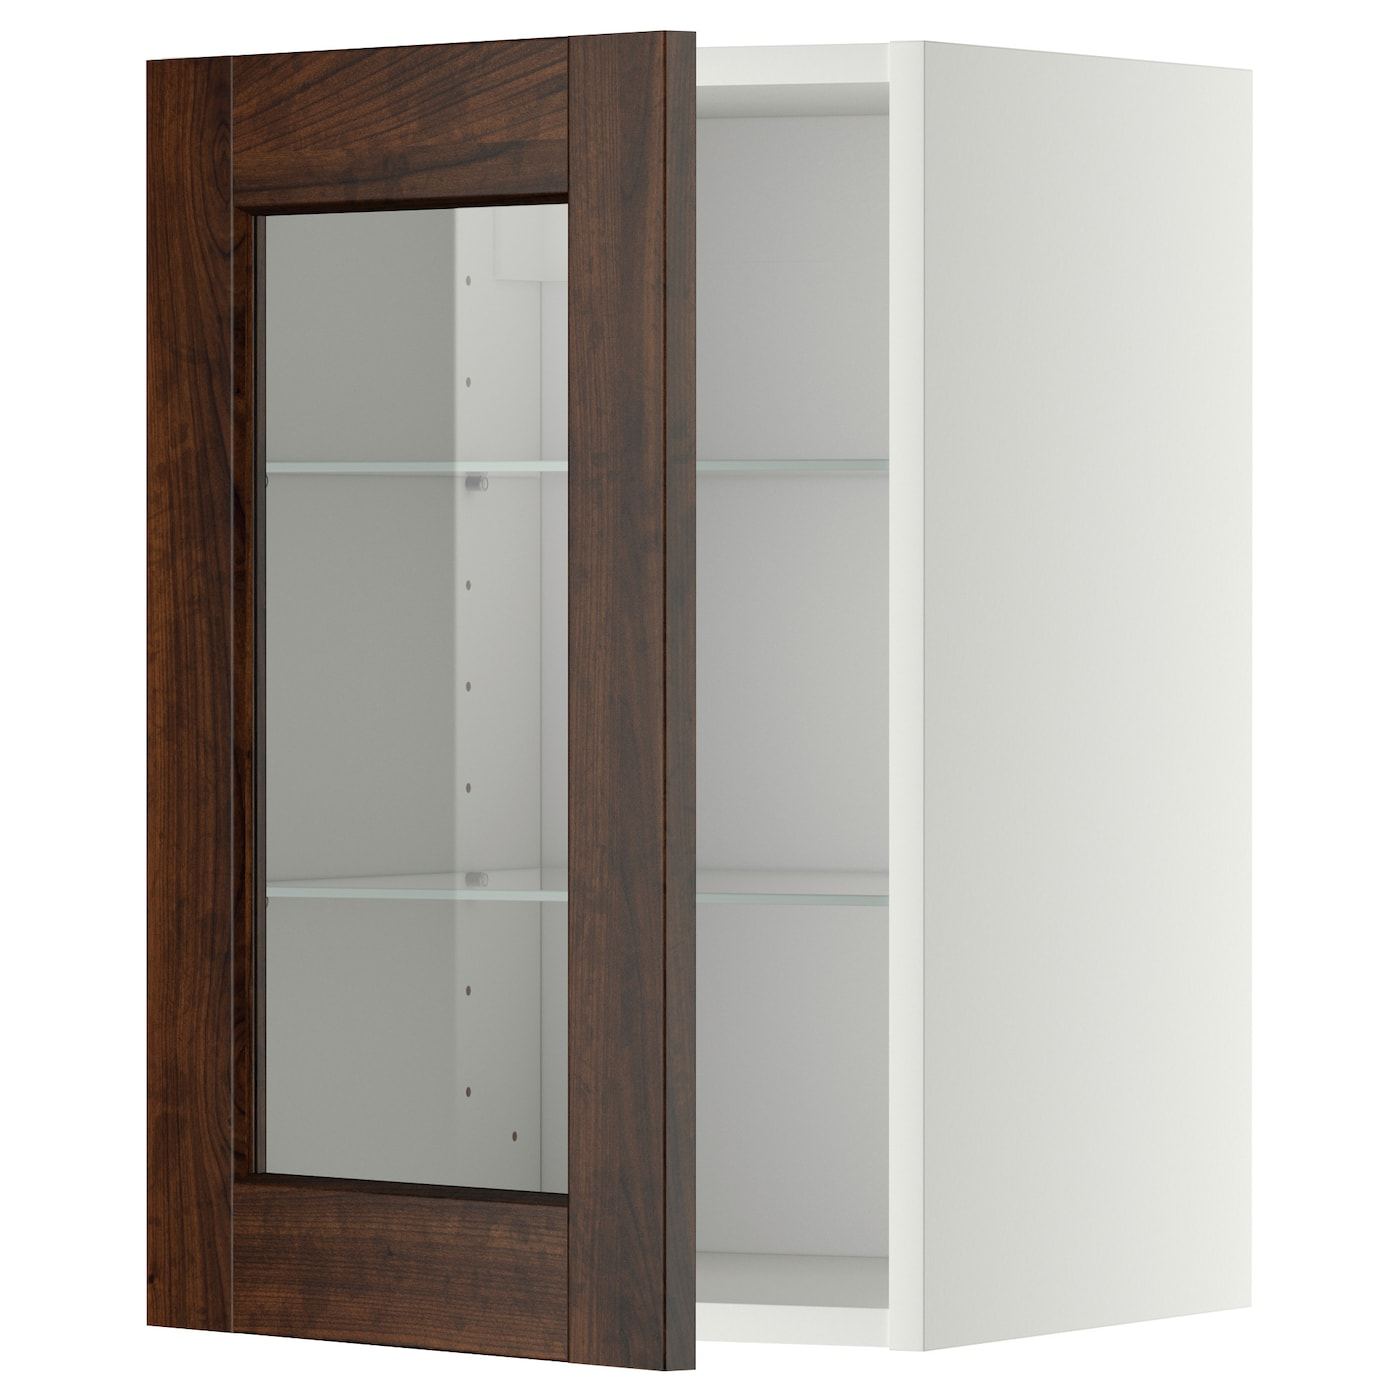 Metod wall cabinet w shelves glass door white edserum - Ikea cabinet doors on existing cabinets ...